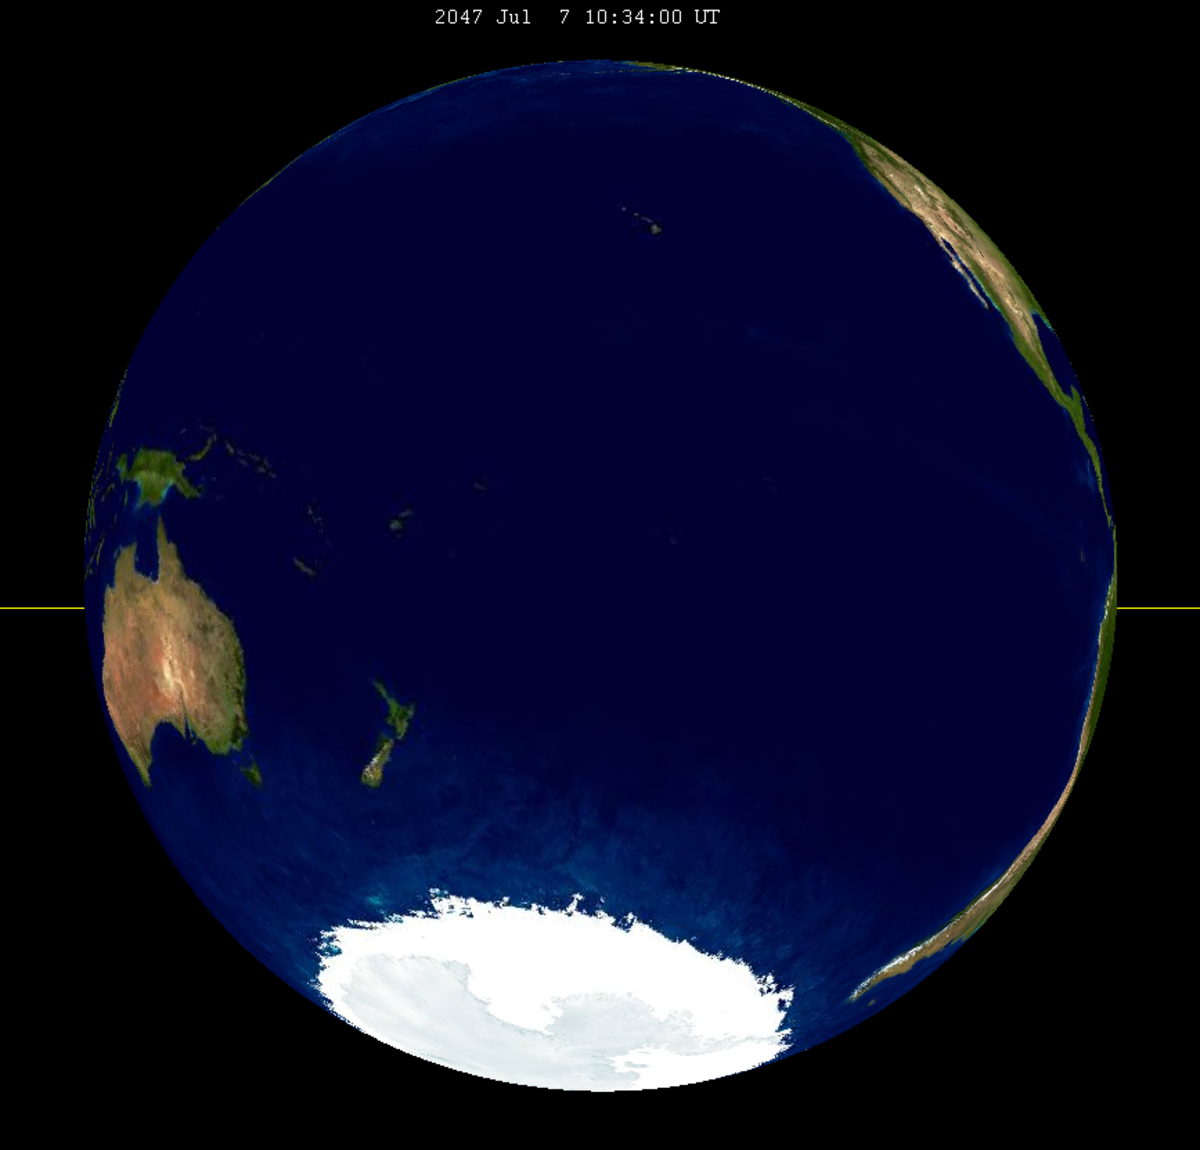 Lunar eclipse from moon-2047Jul07.png